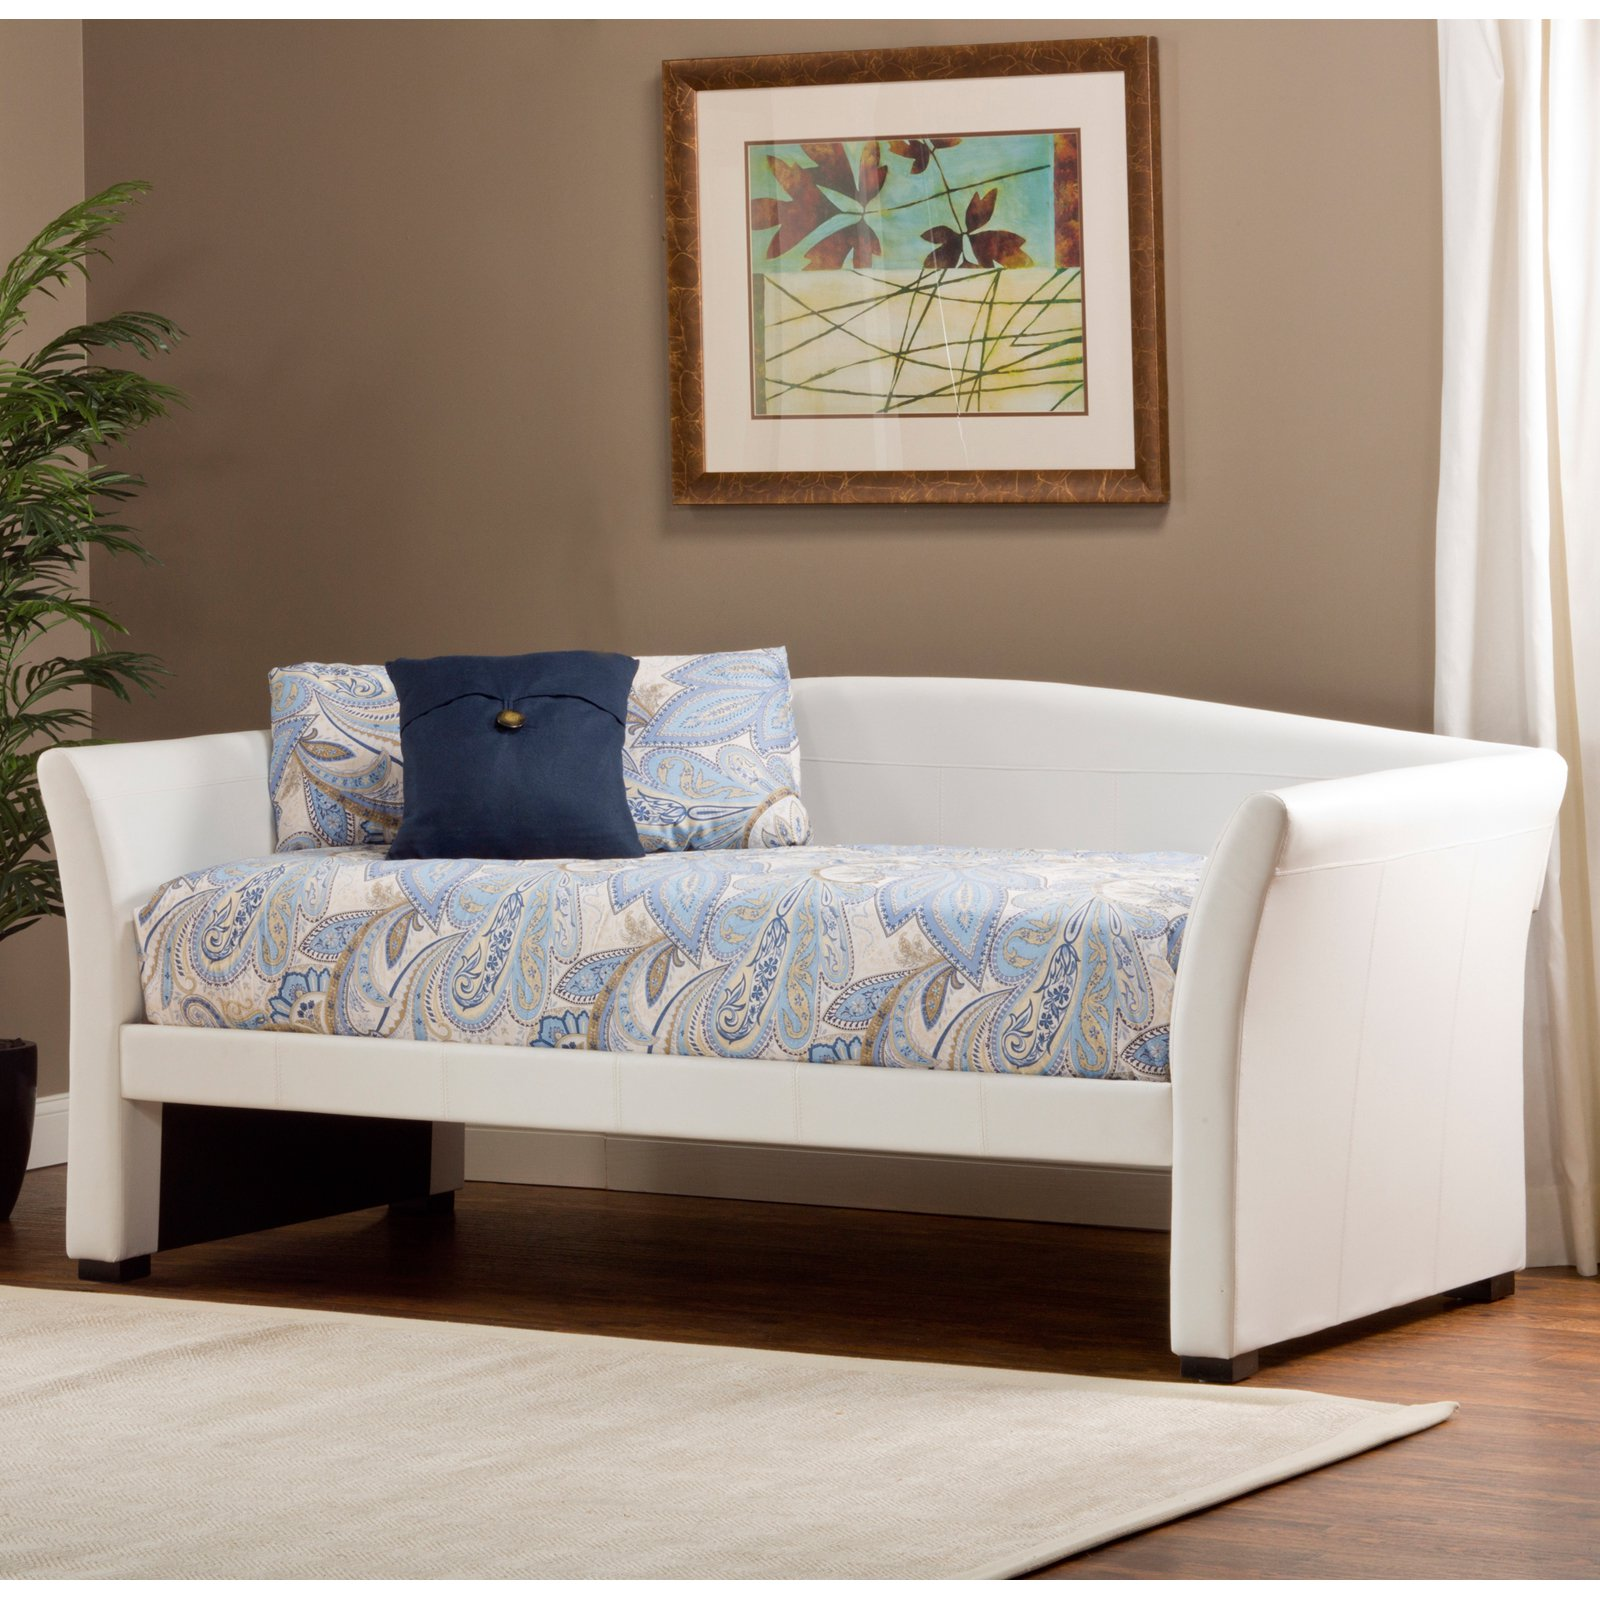 Hillsdale Montgomery Daybed - White